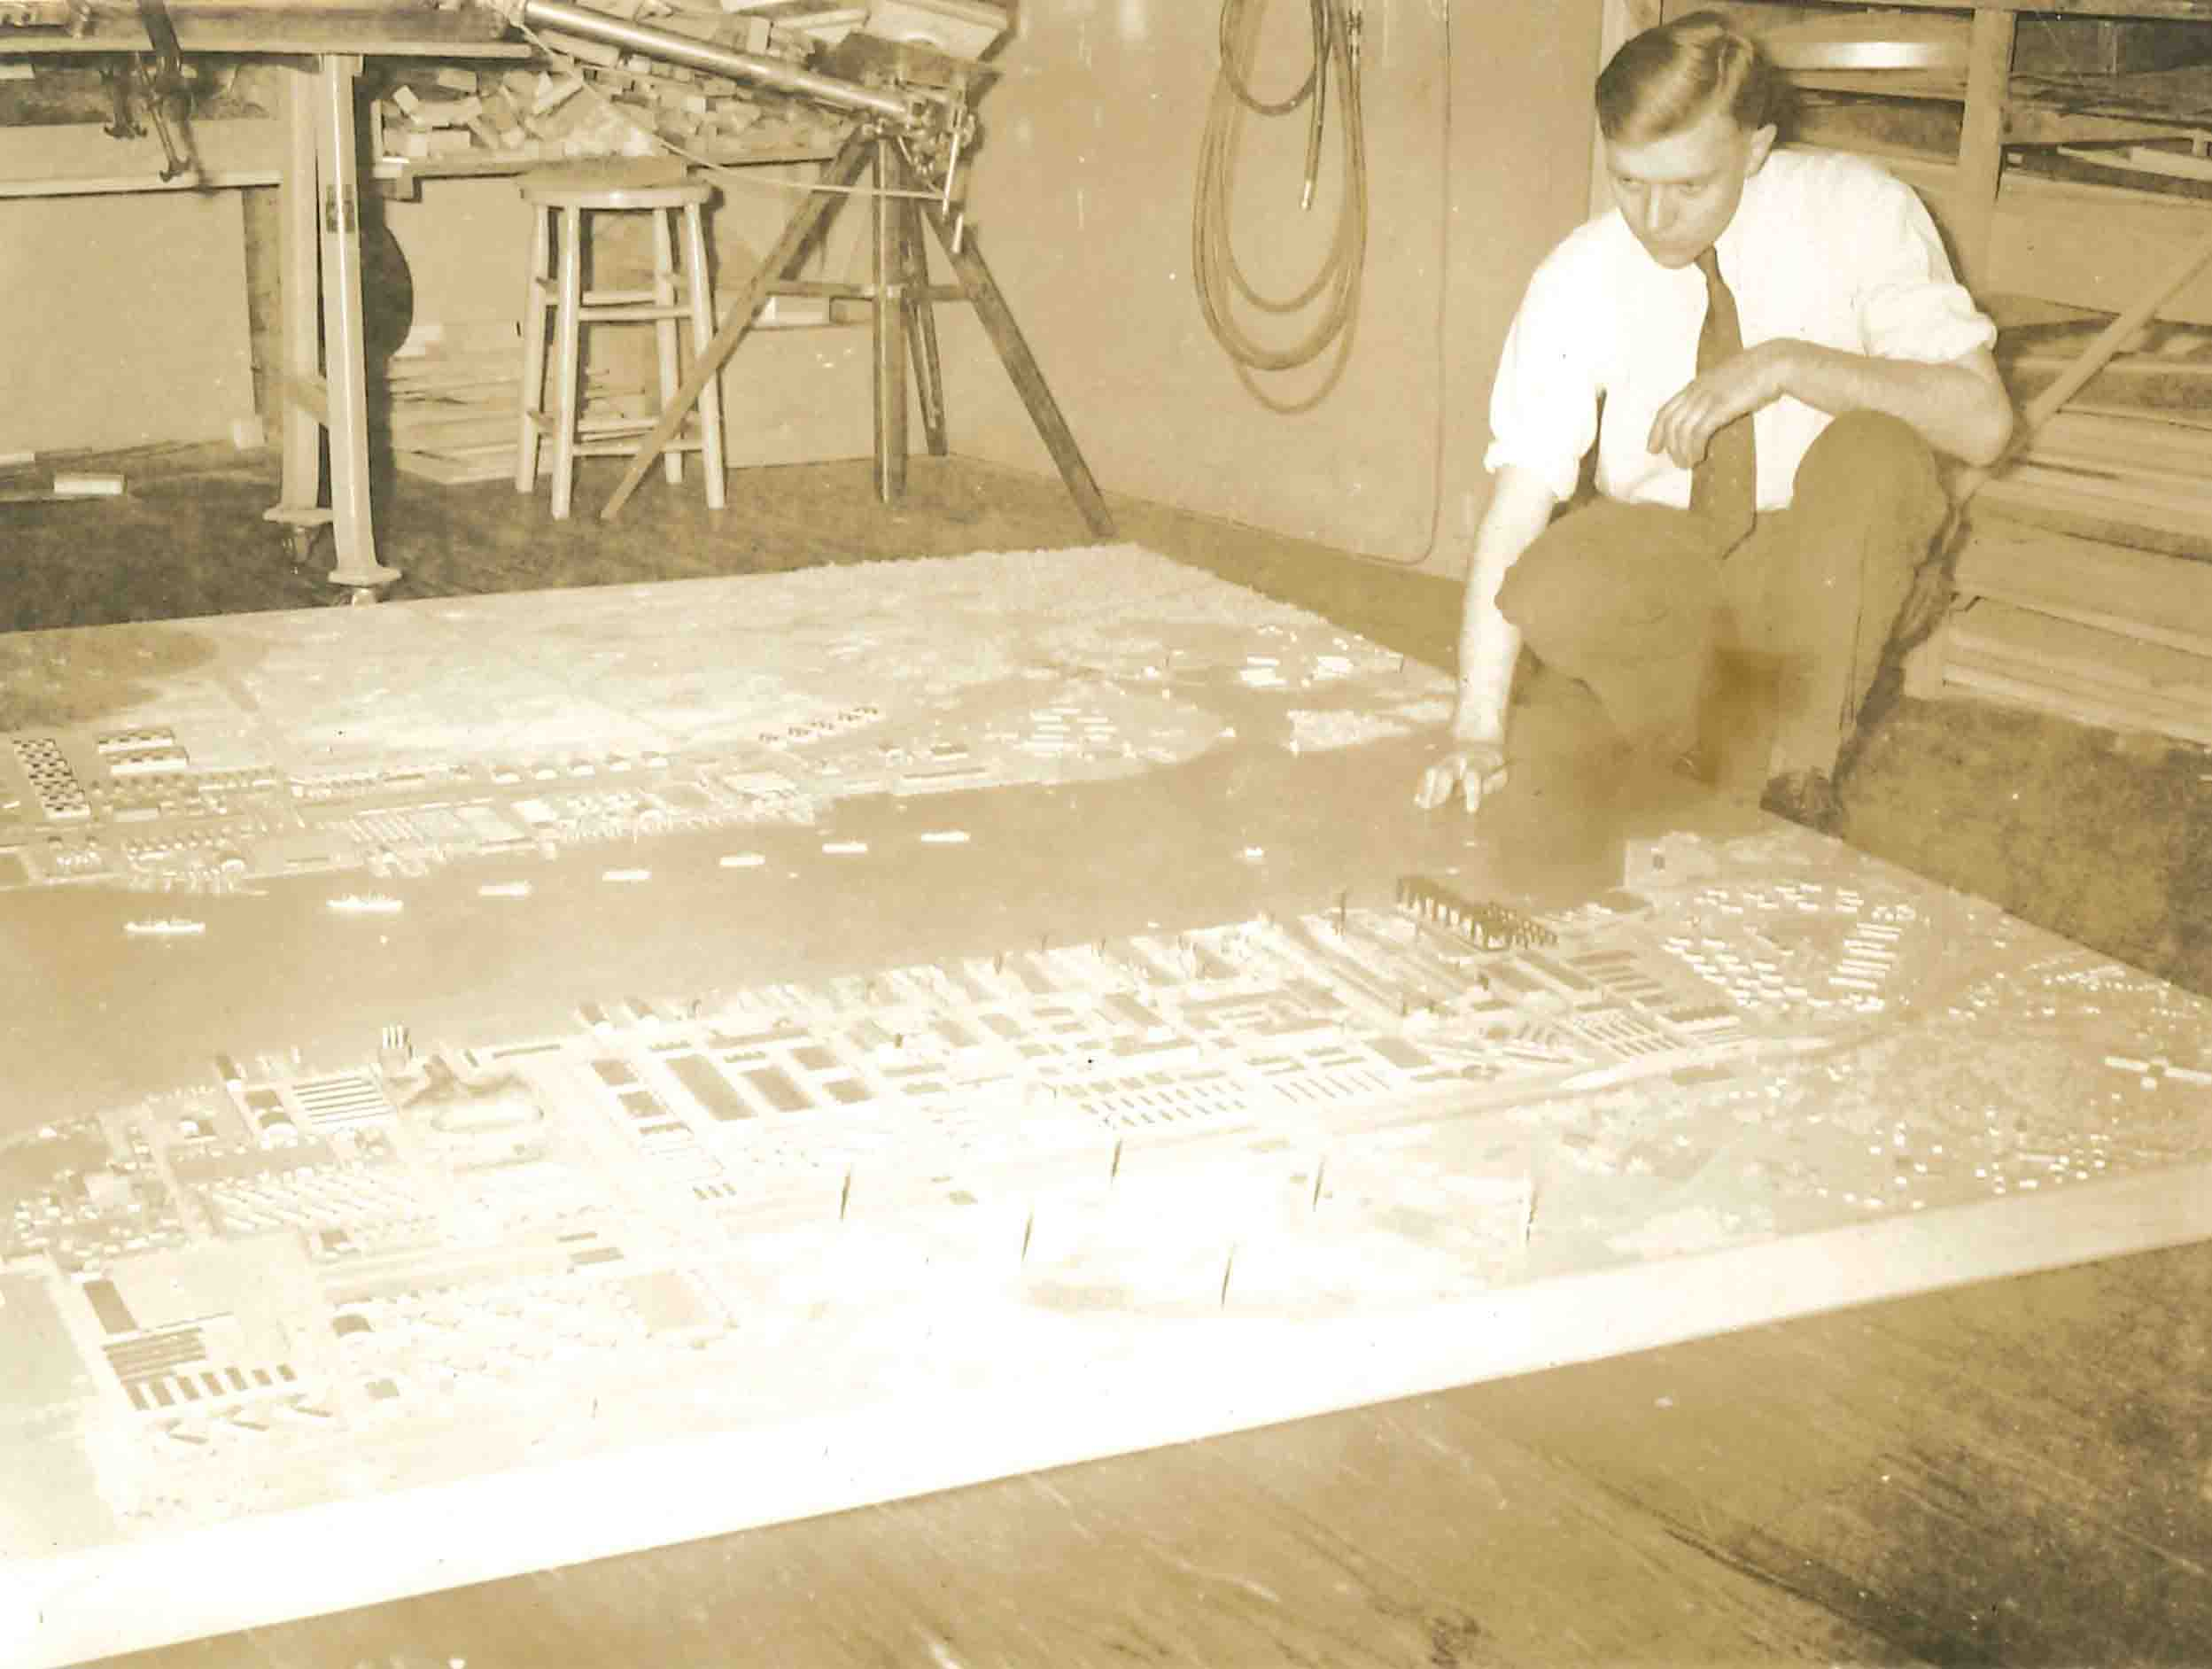 - Theodore Conrad with his model of the Fortune Naval Base, 1940, photographer unknown